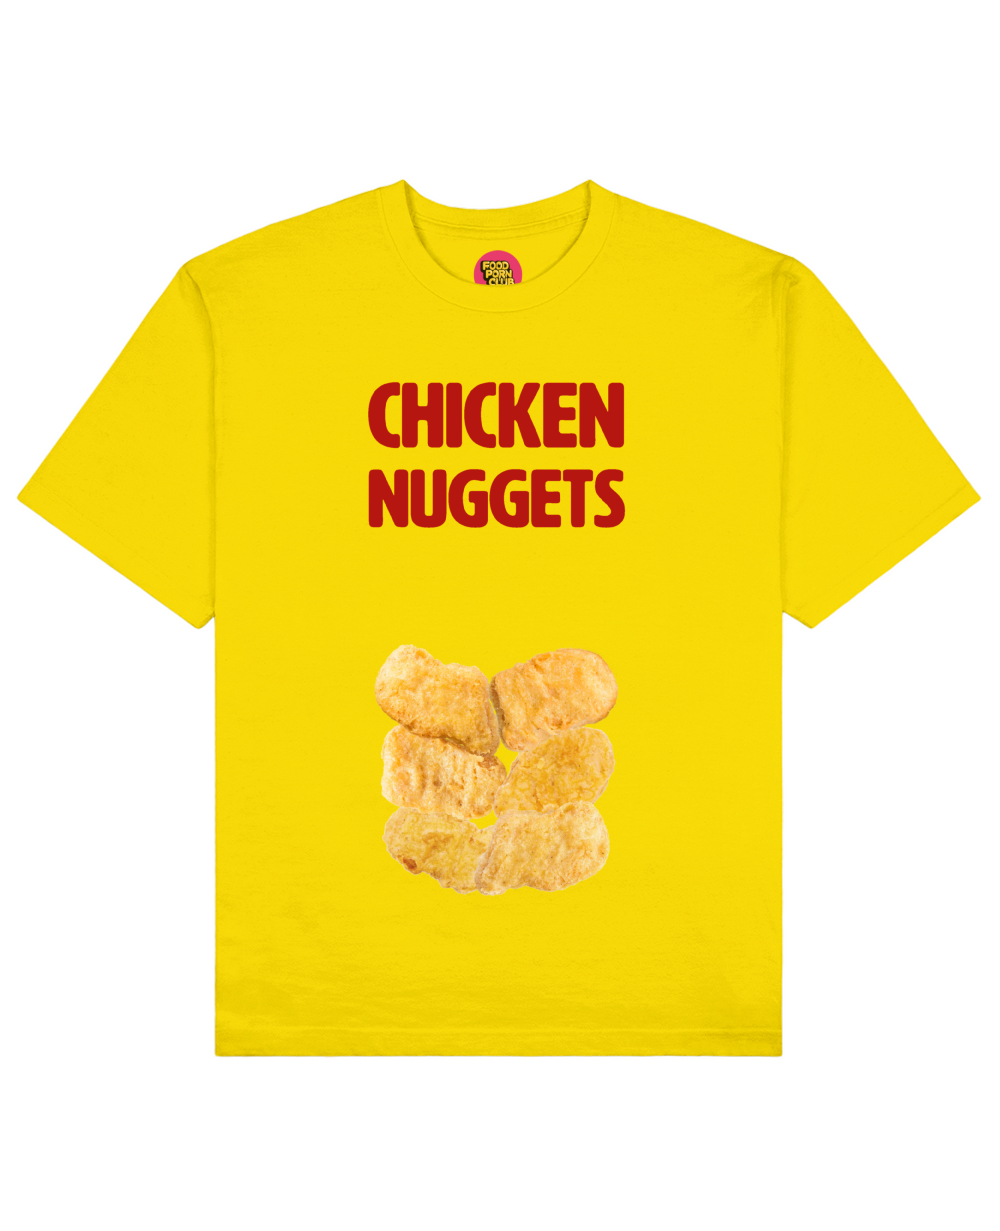 Chicken Nuggets Print T-Shirt in Yellow - T-Shirts - FOOD PORN CLUB - BRANMA